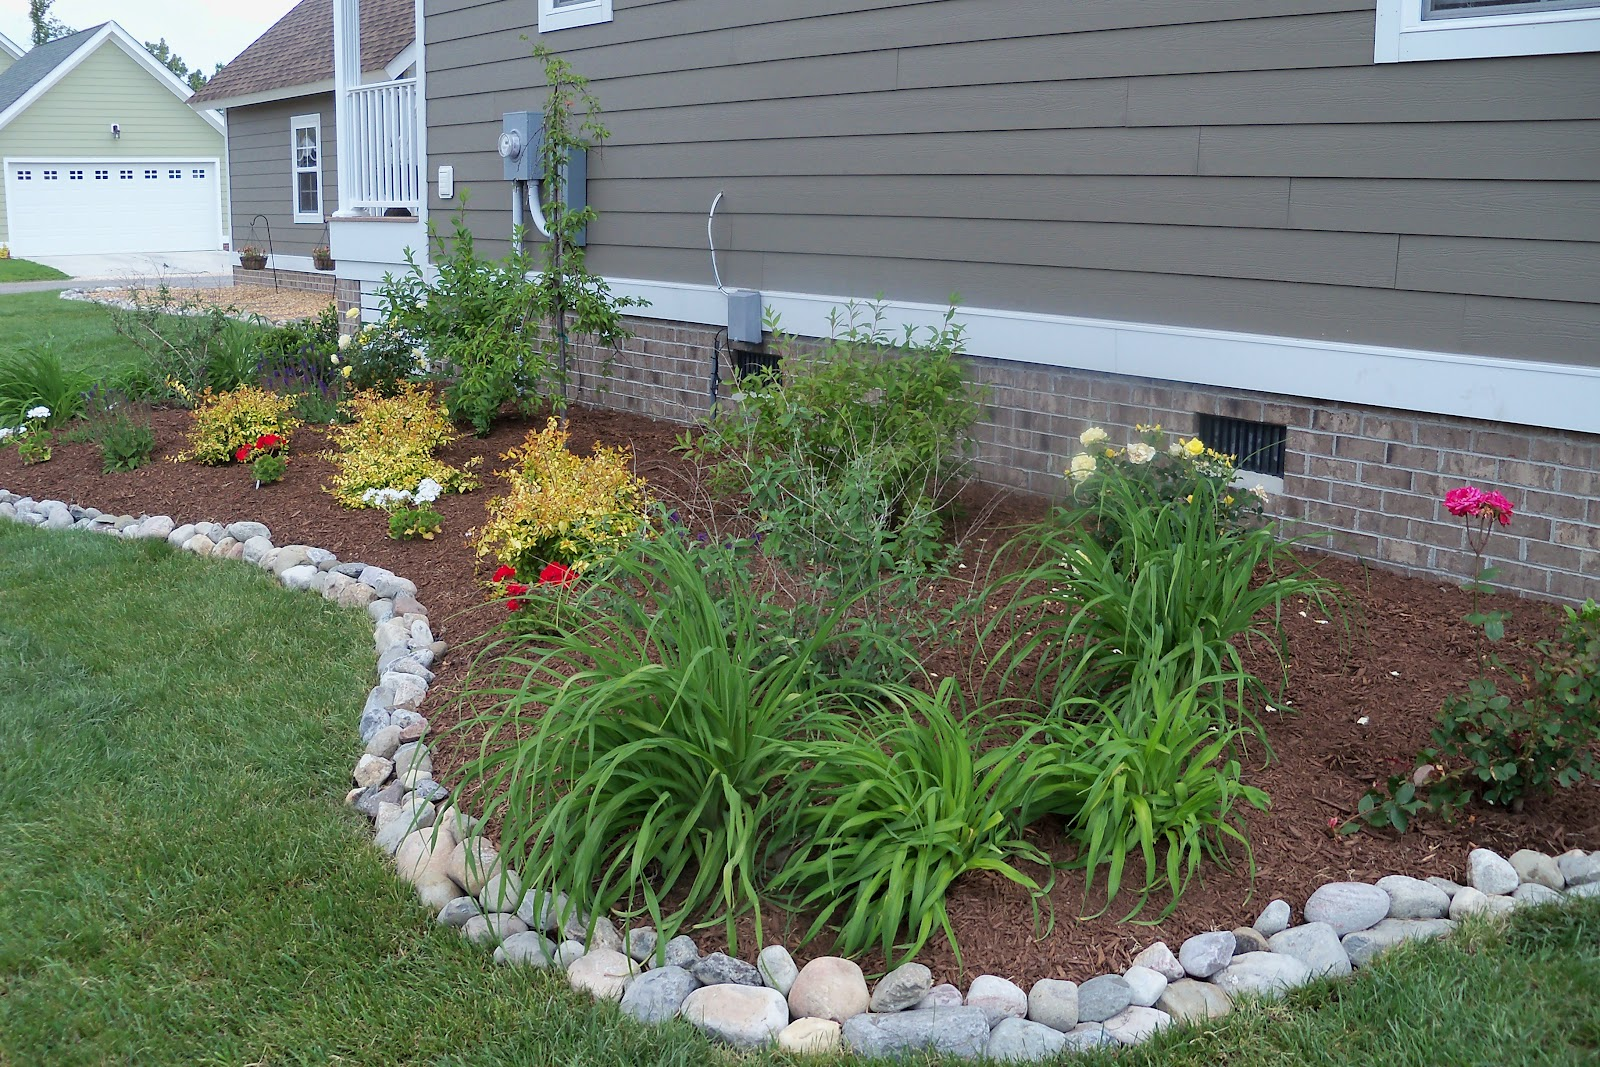 Driveway Edging Ideas | Home Depot Landscape Edging | Home Depot Edging